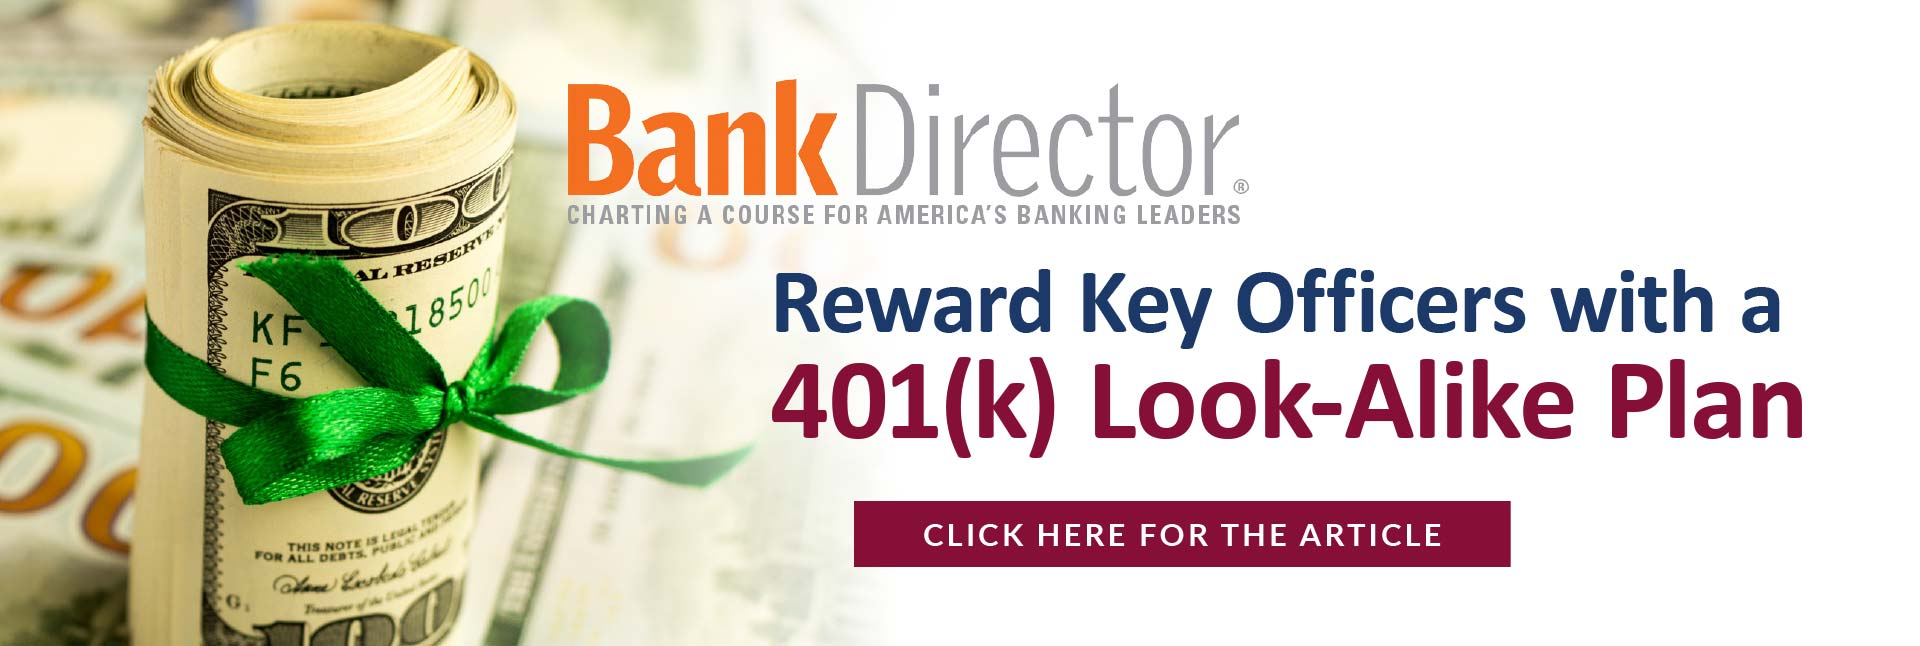 Bank Director - What Are the Best Ways to Fund Your Retirement Plans for Executives and Directors?